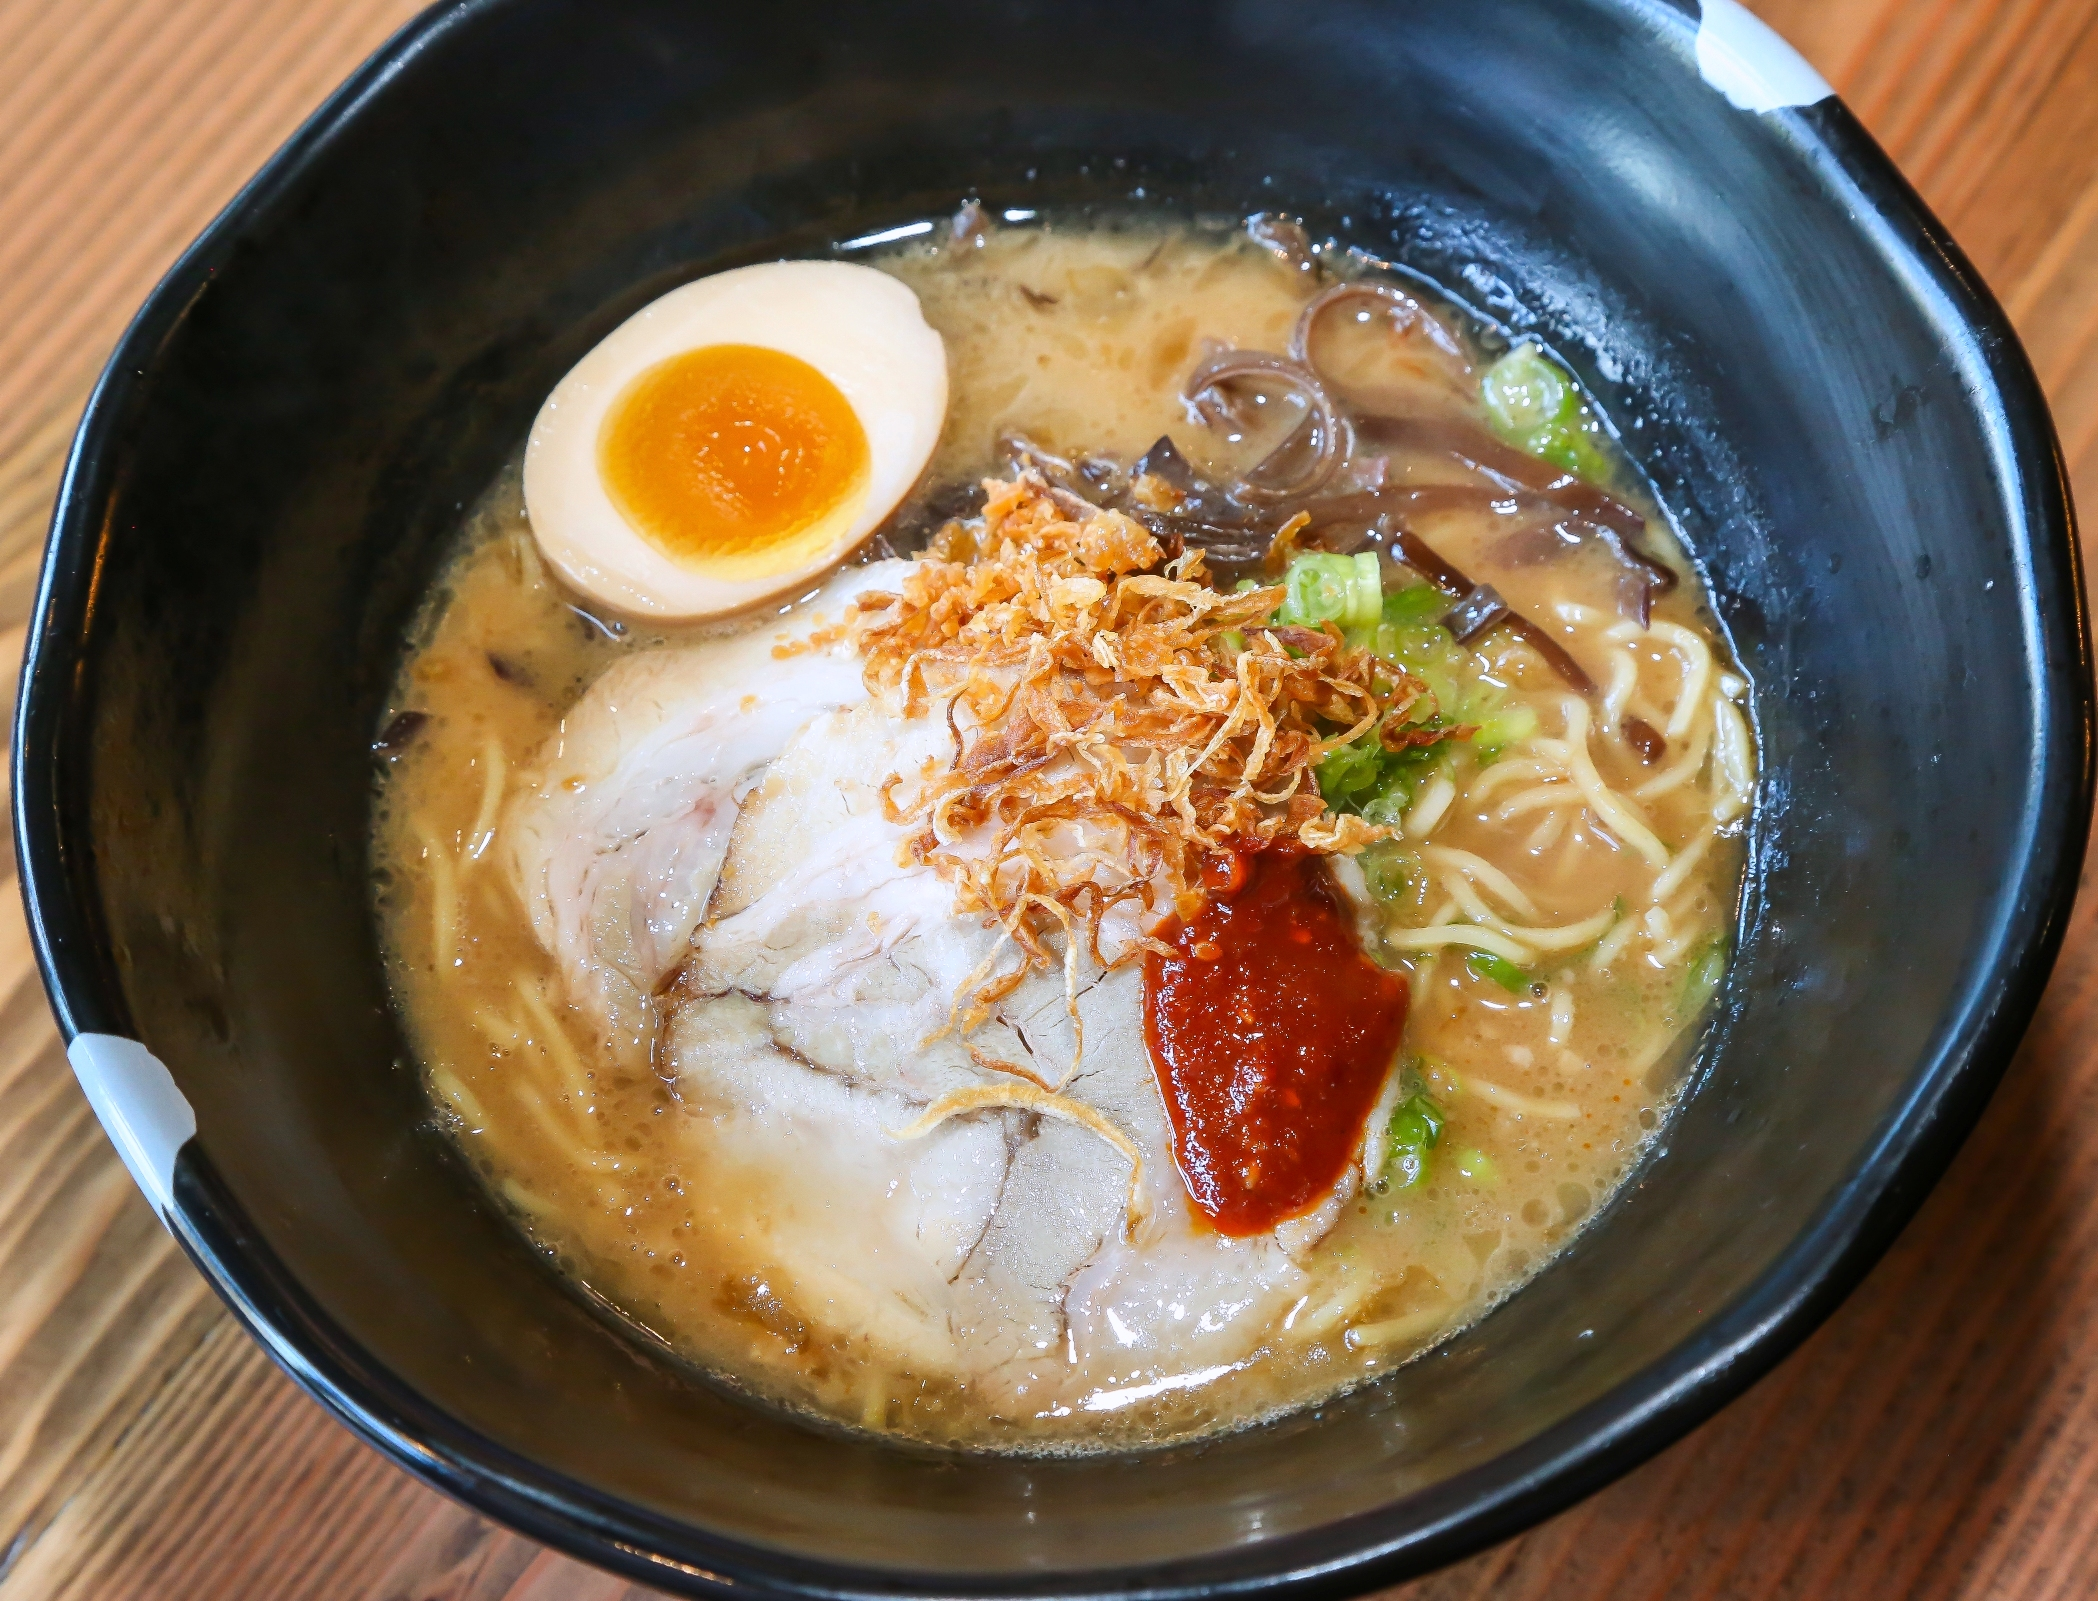 Though the menu is quite expansive, JINYA specializes in authentic Tonkotsu ramen, with a focus on flavorful broth; the food preparation process includes simmering the broth for over 12 hours. (Image: Peter Stepanek)